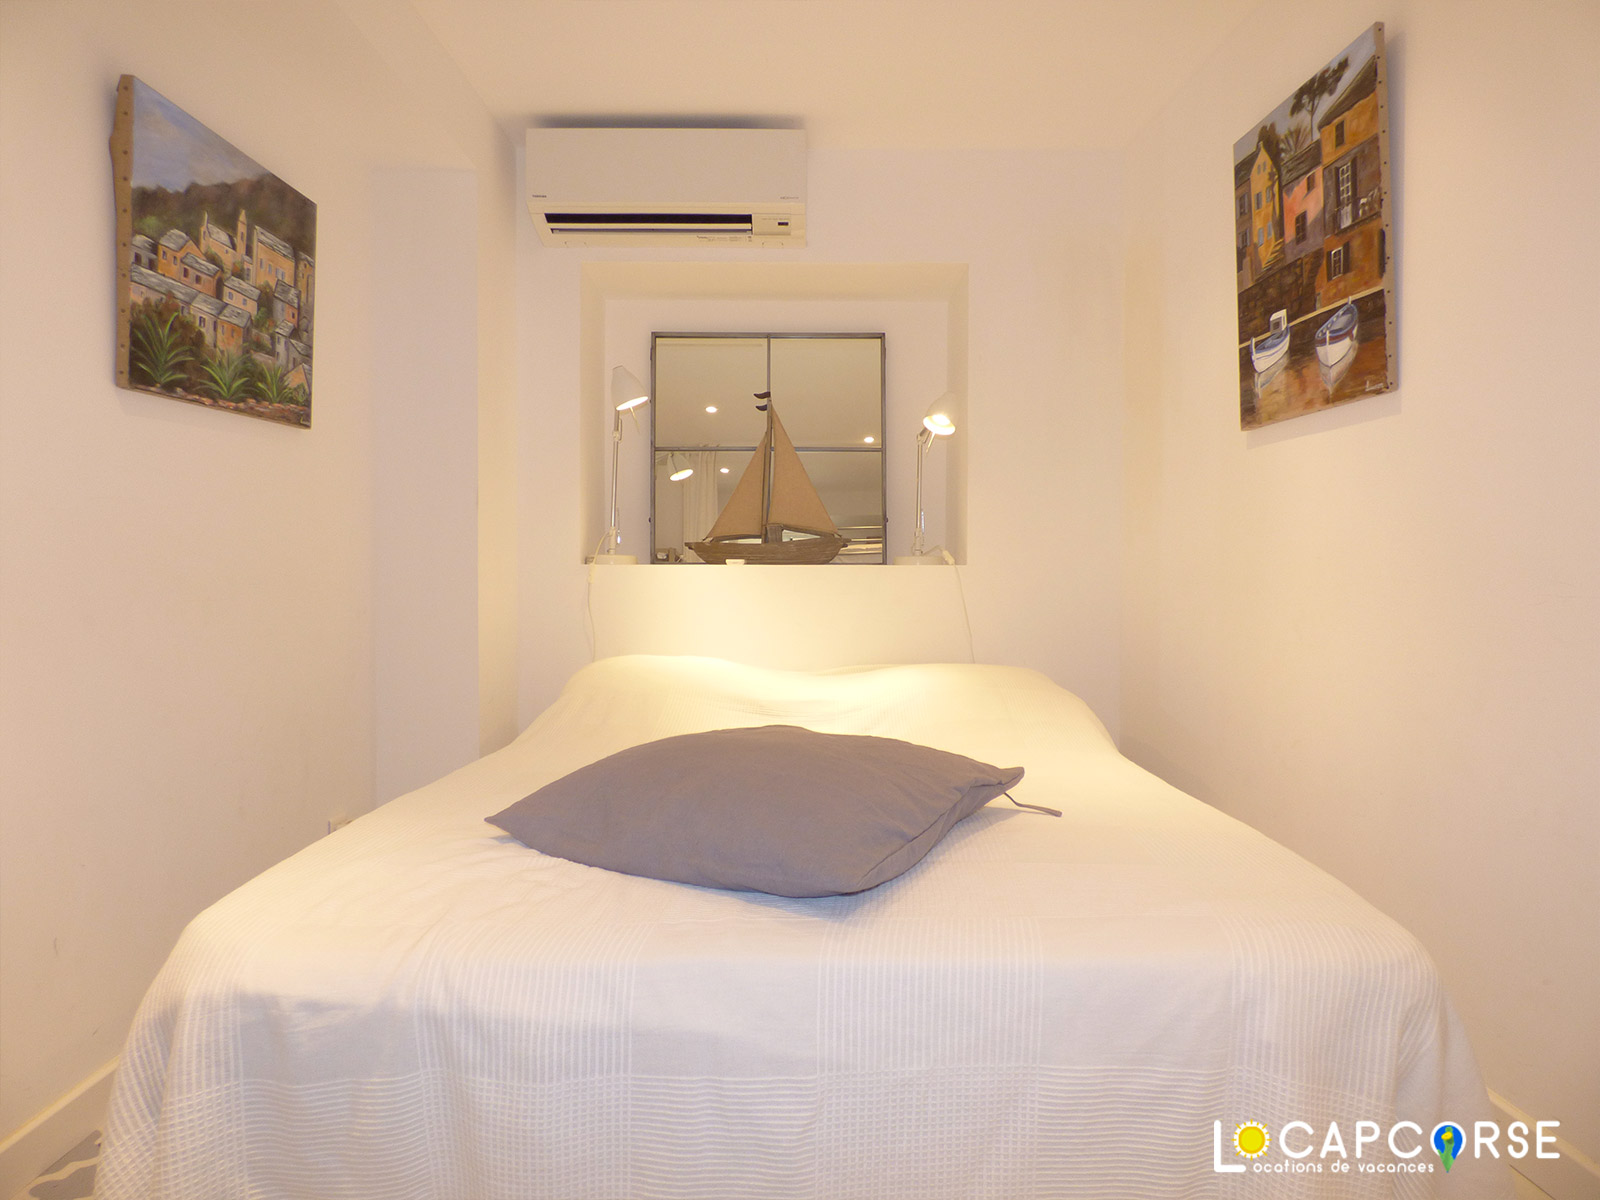 Locapcorse - Holiday rentals in Northern Corsica Double bed with air conditioning